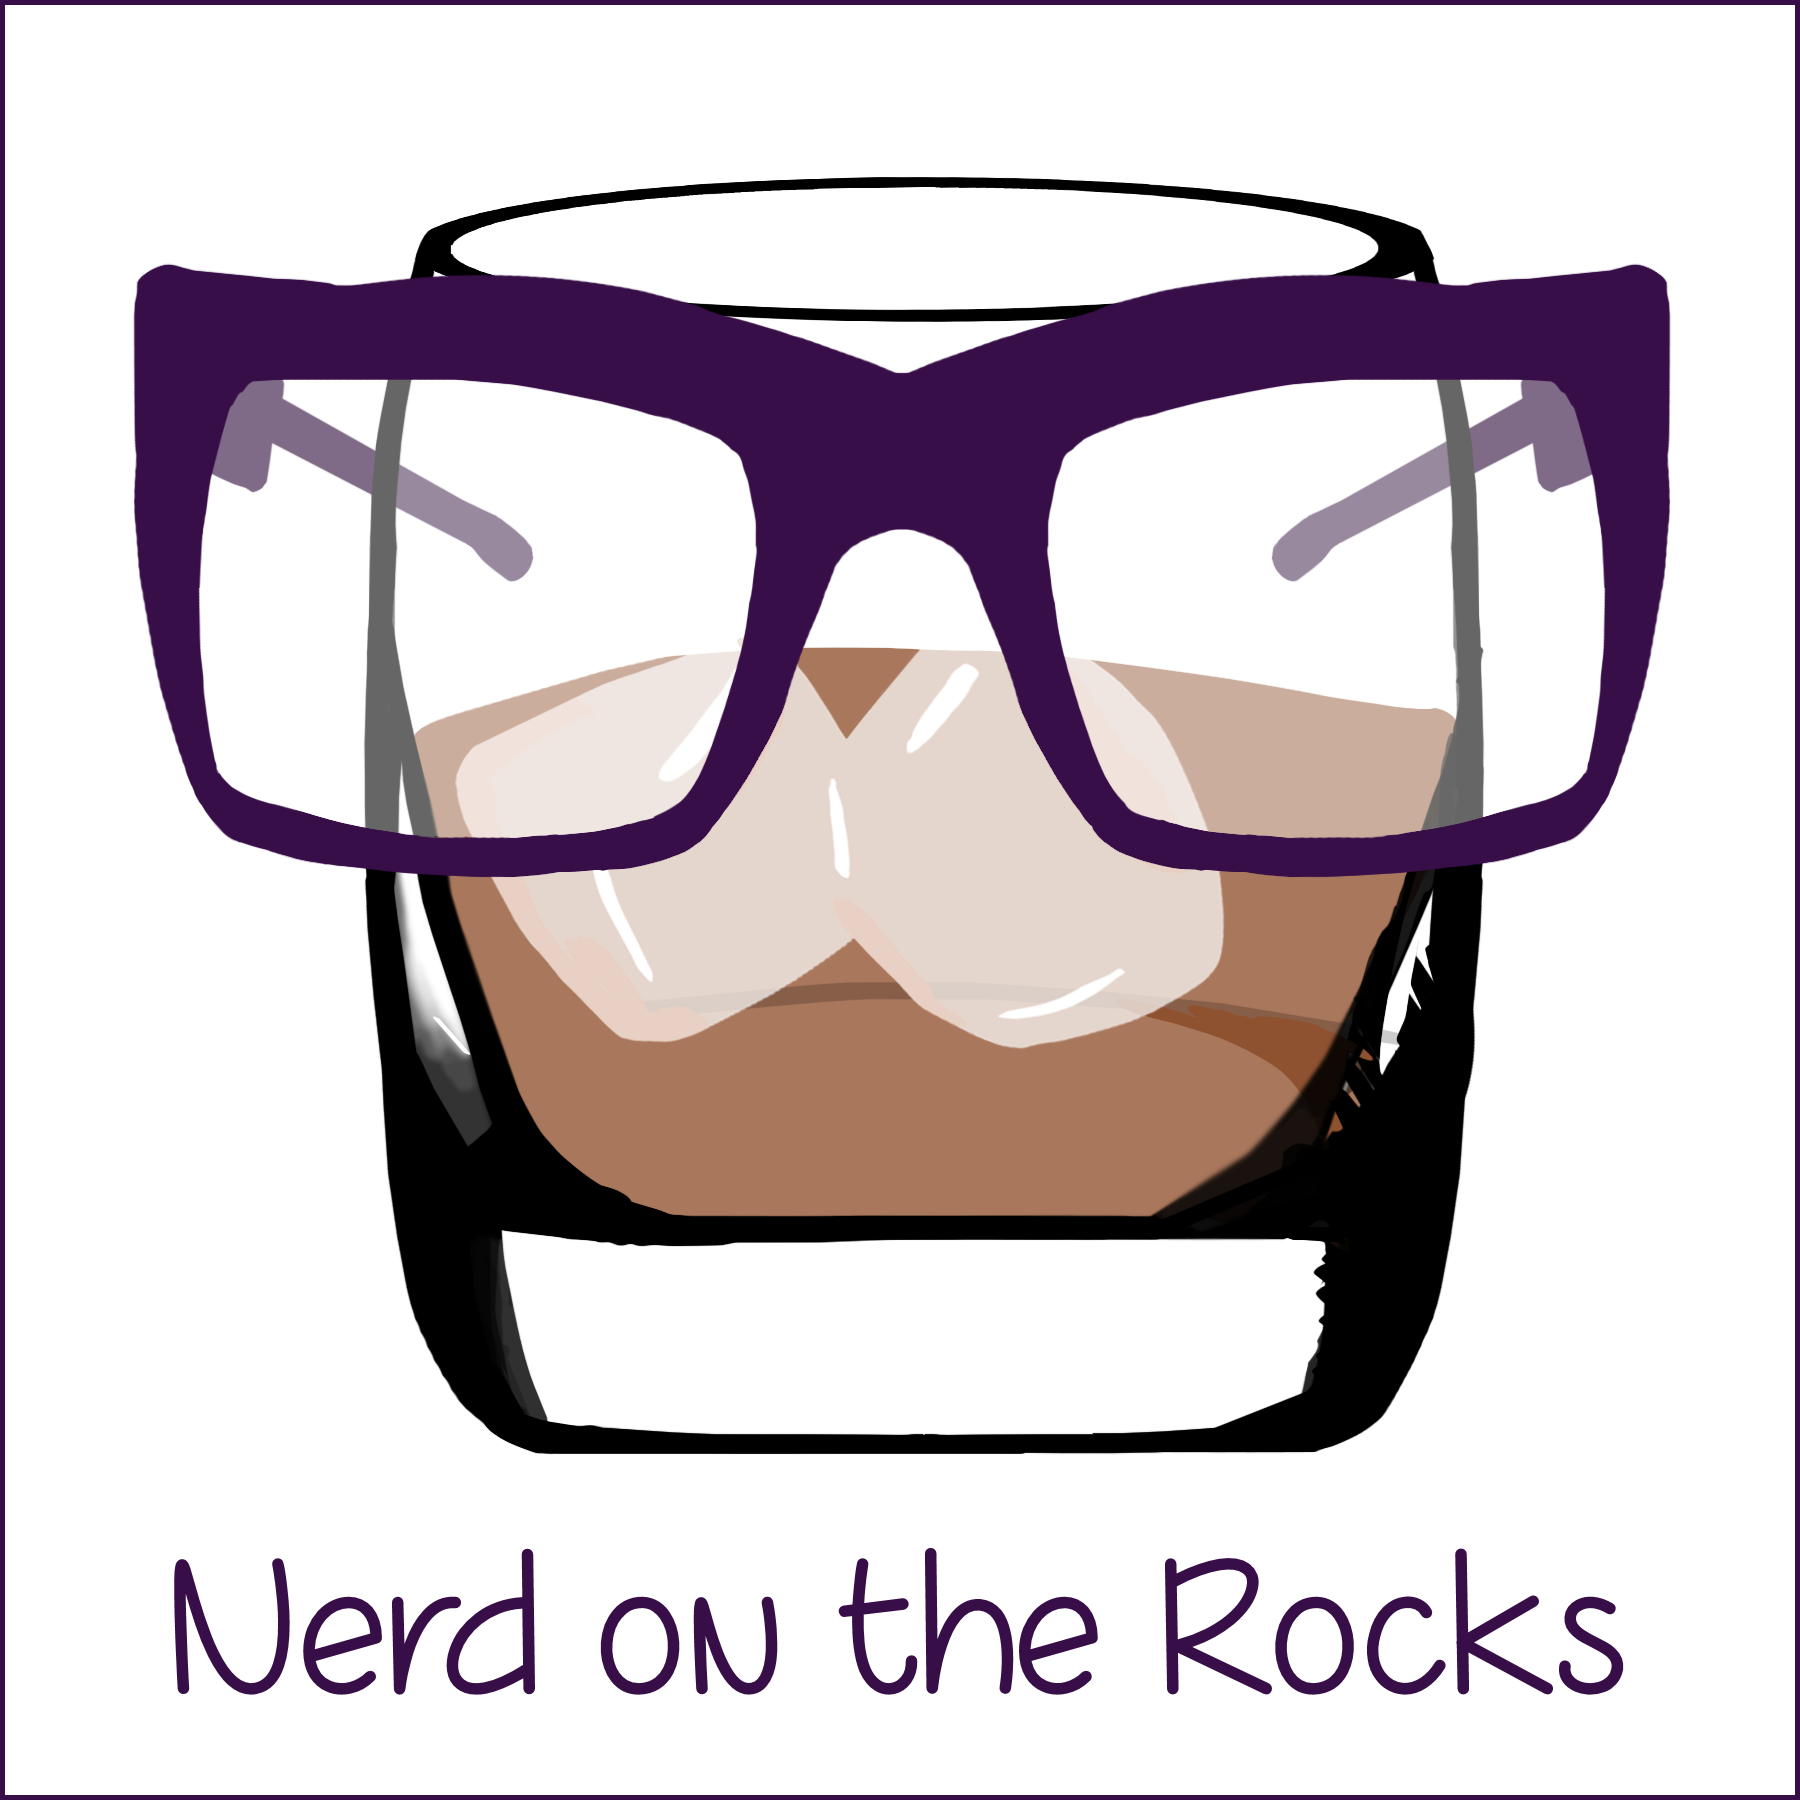 Vision clipart nerd glass. Contact on the rocks